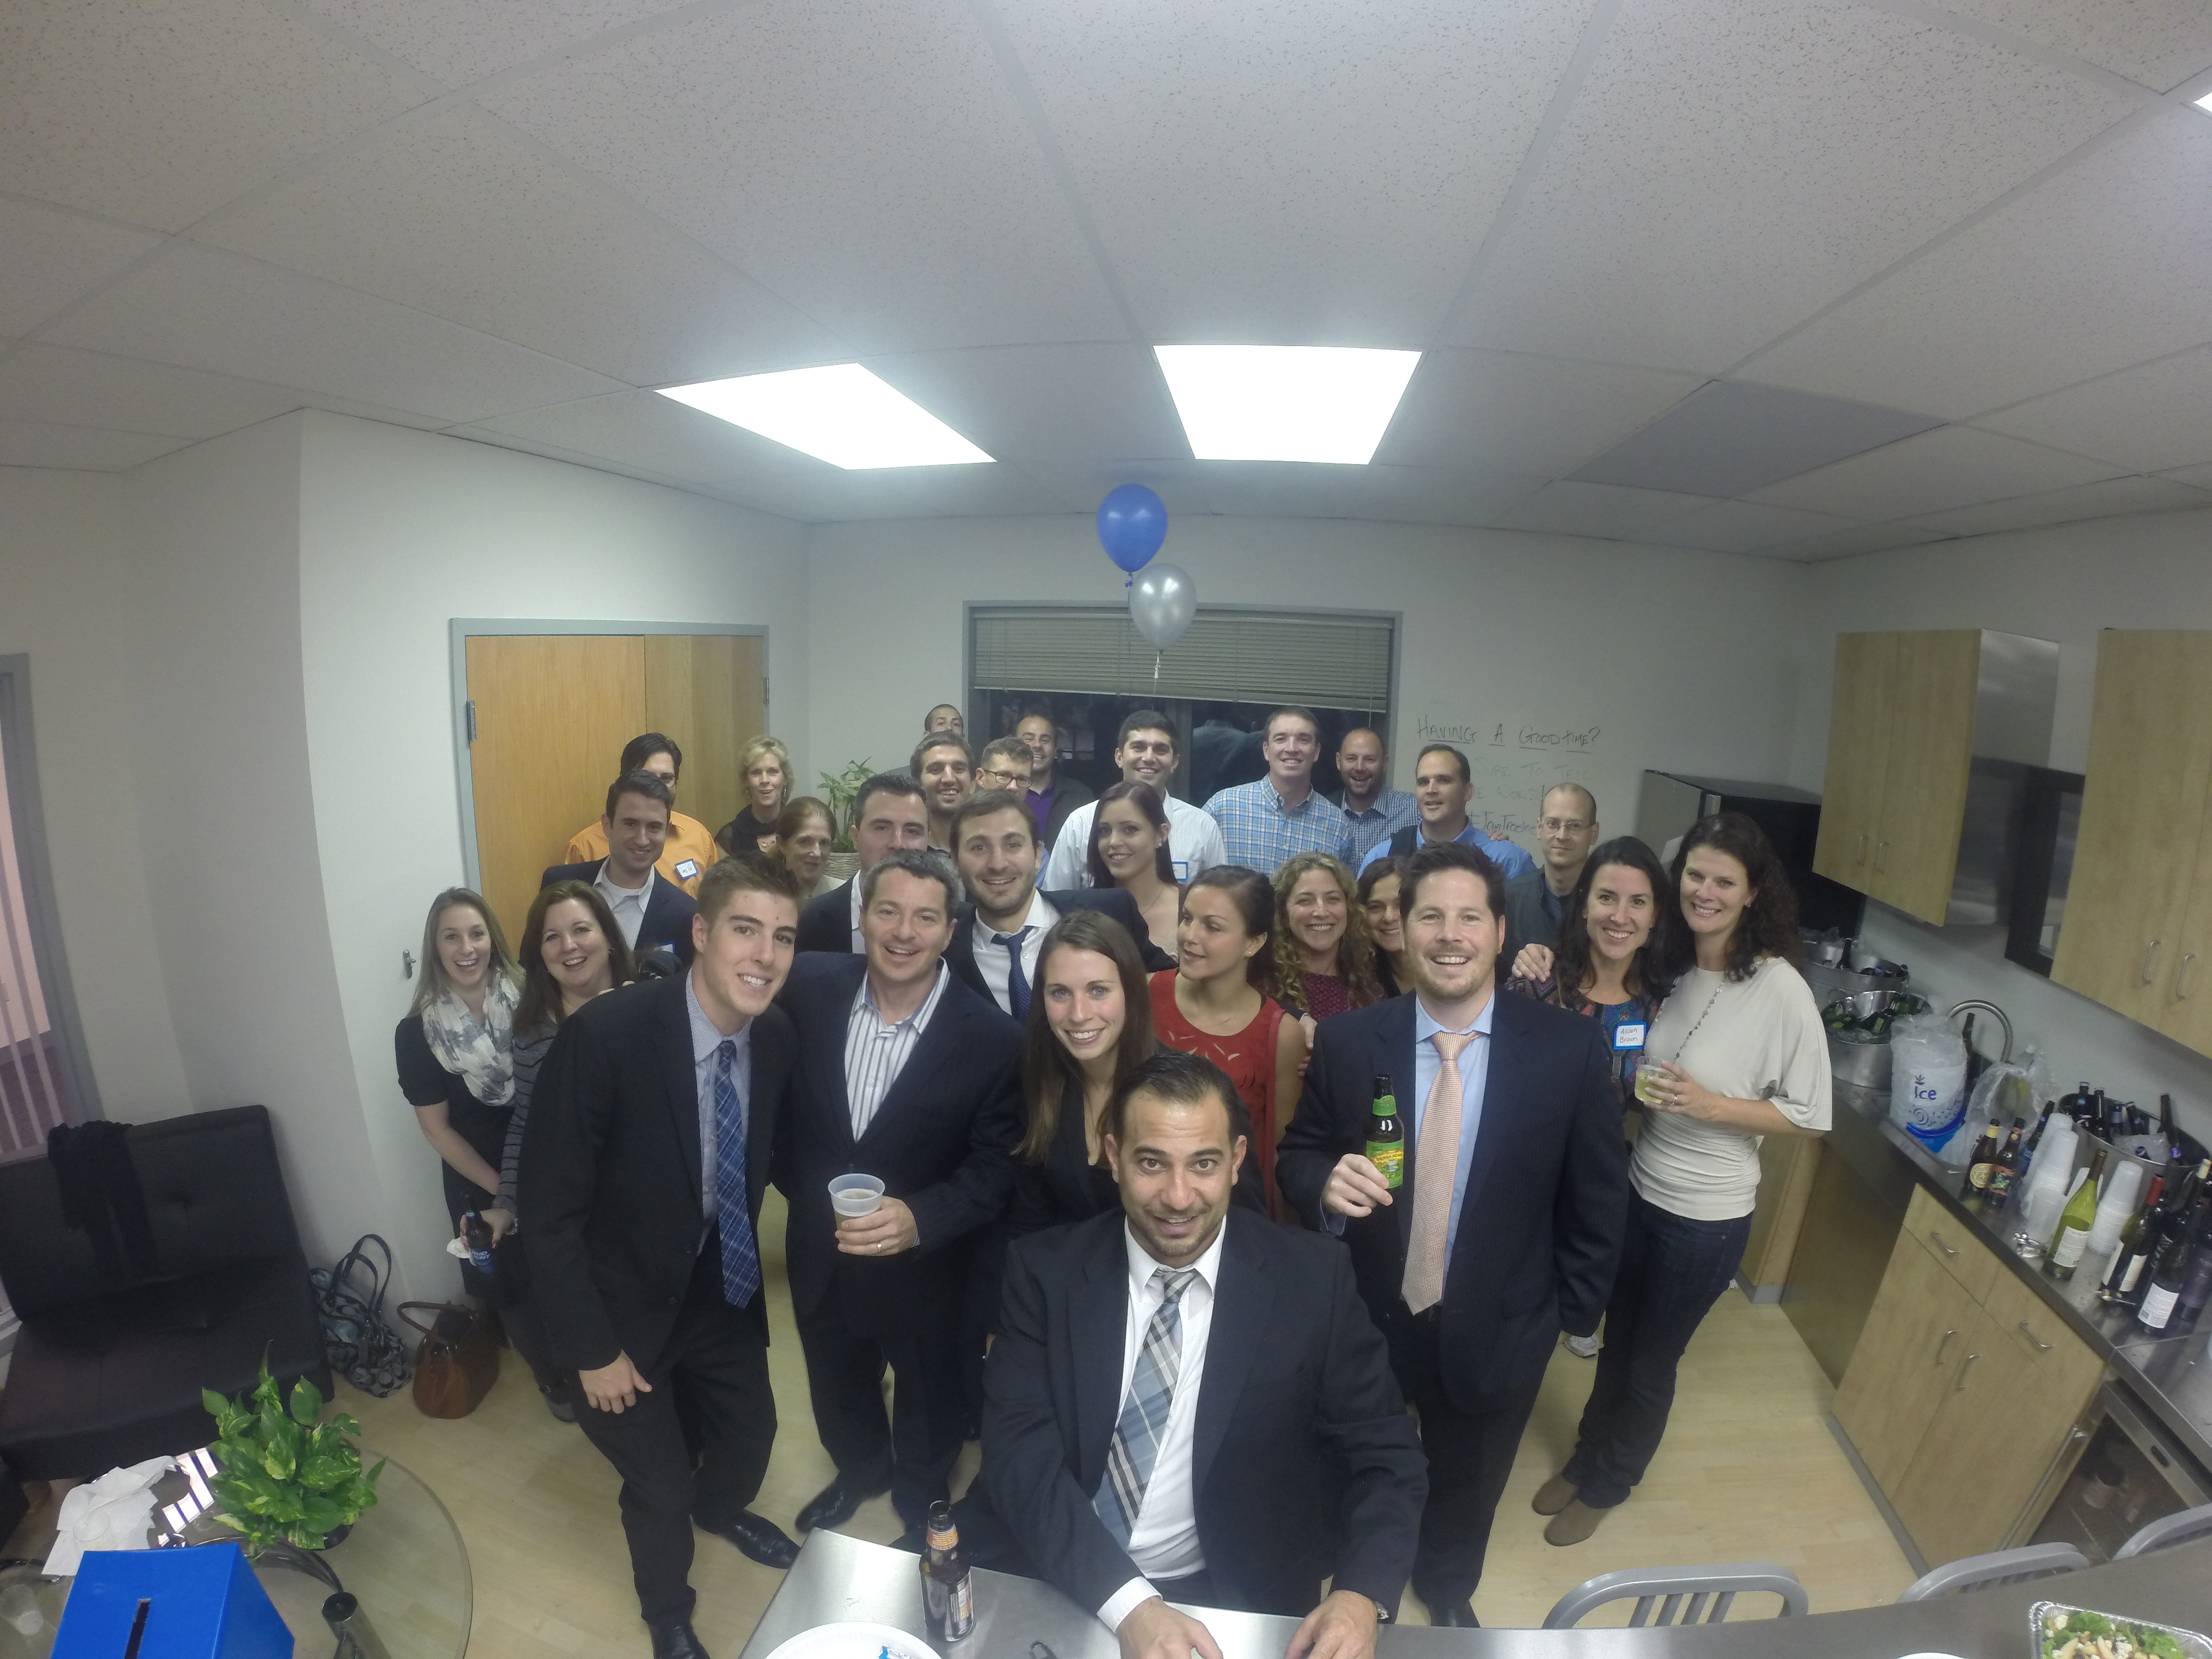 Treeline, Inc. celebrating the new office space with friends, family and the community